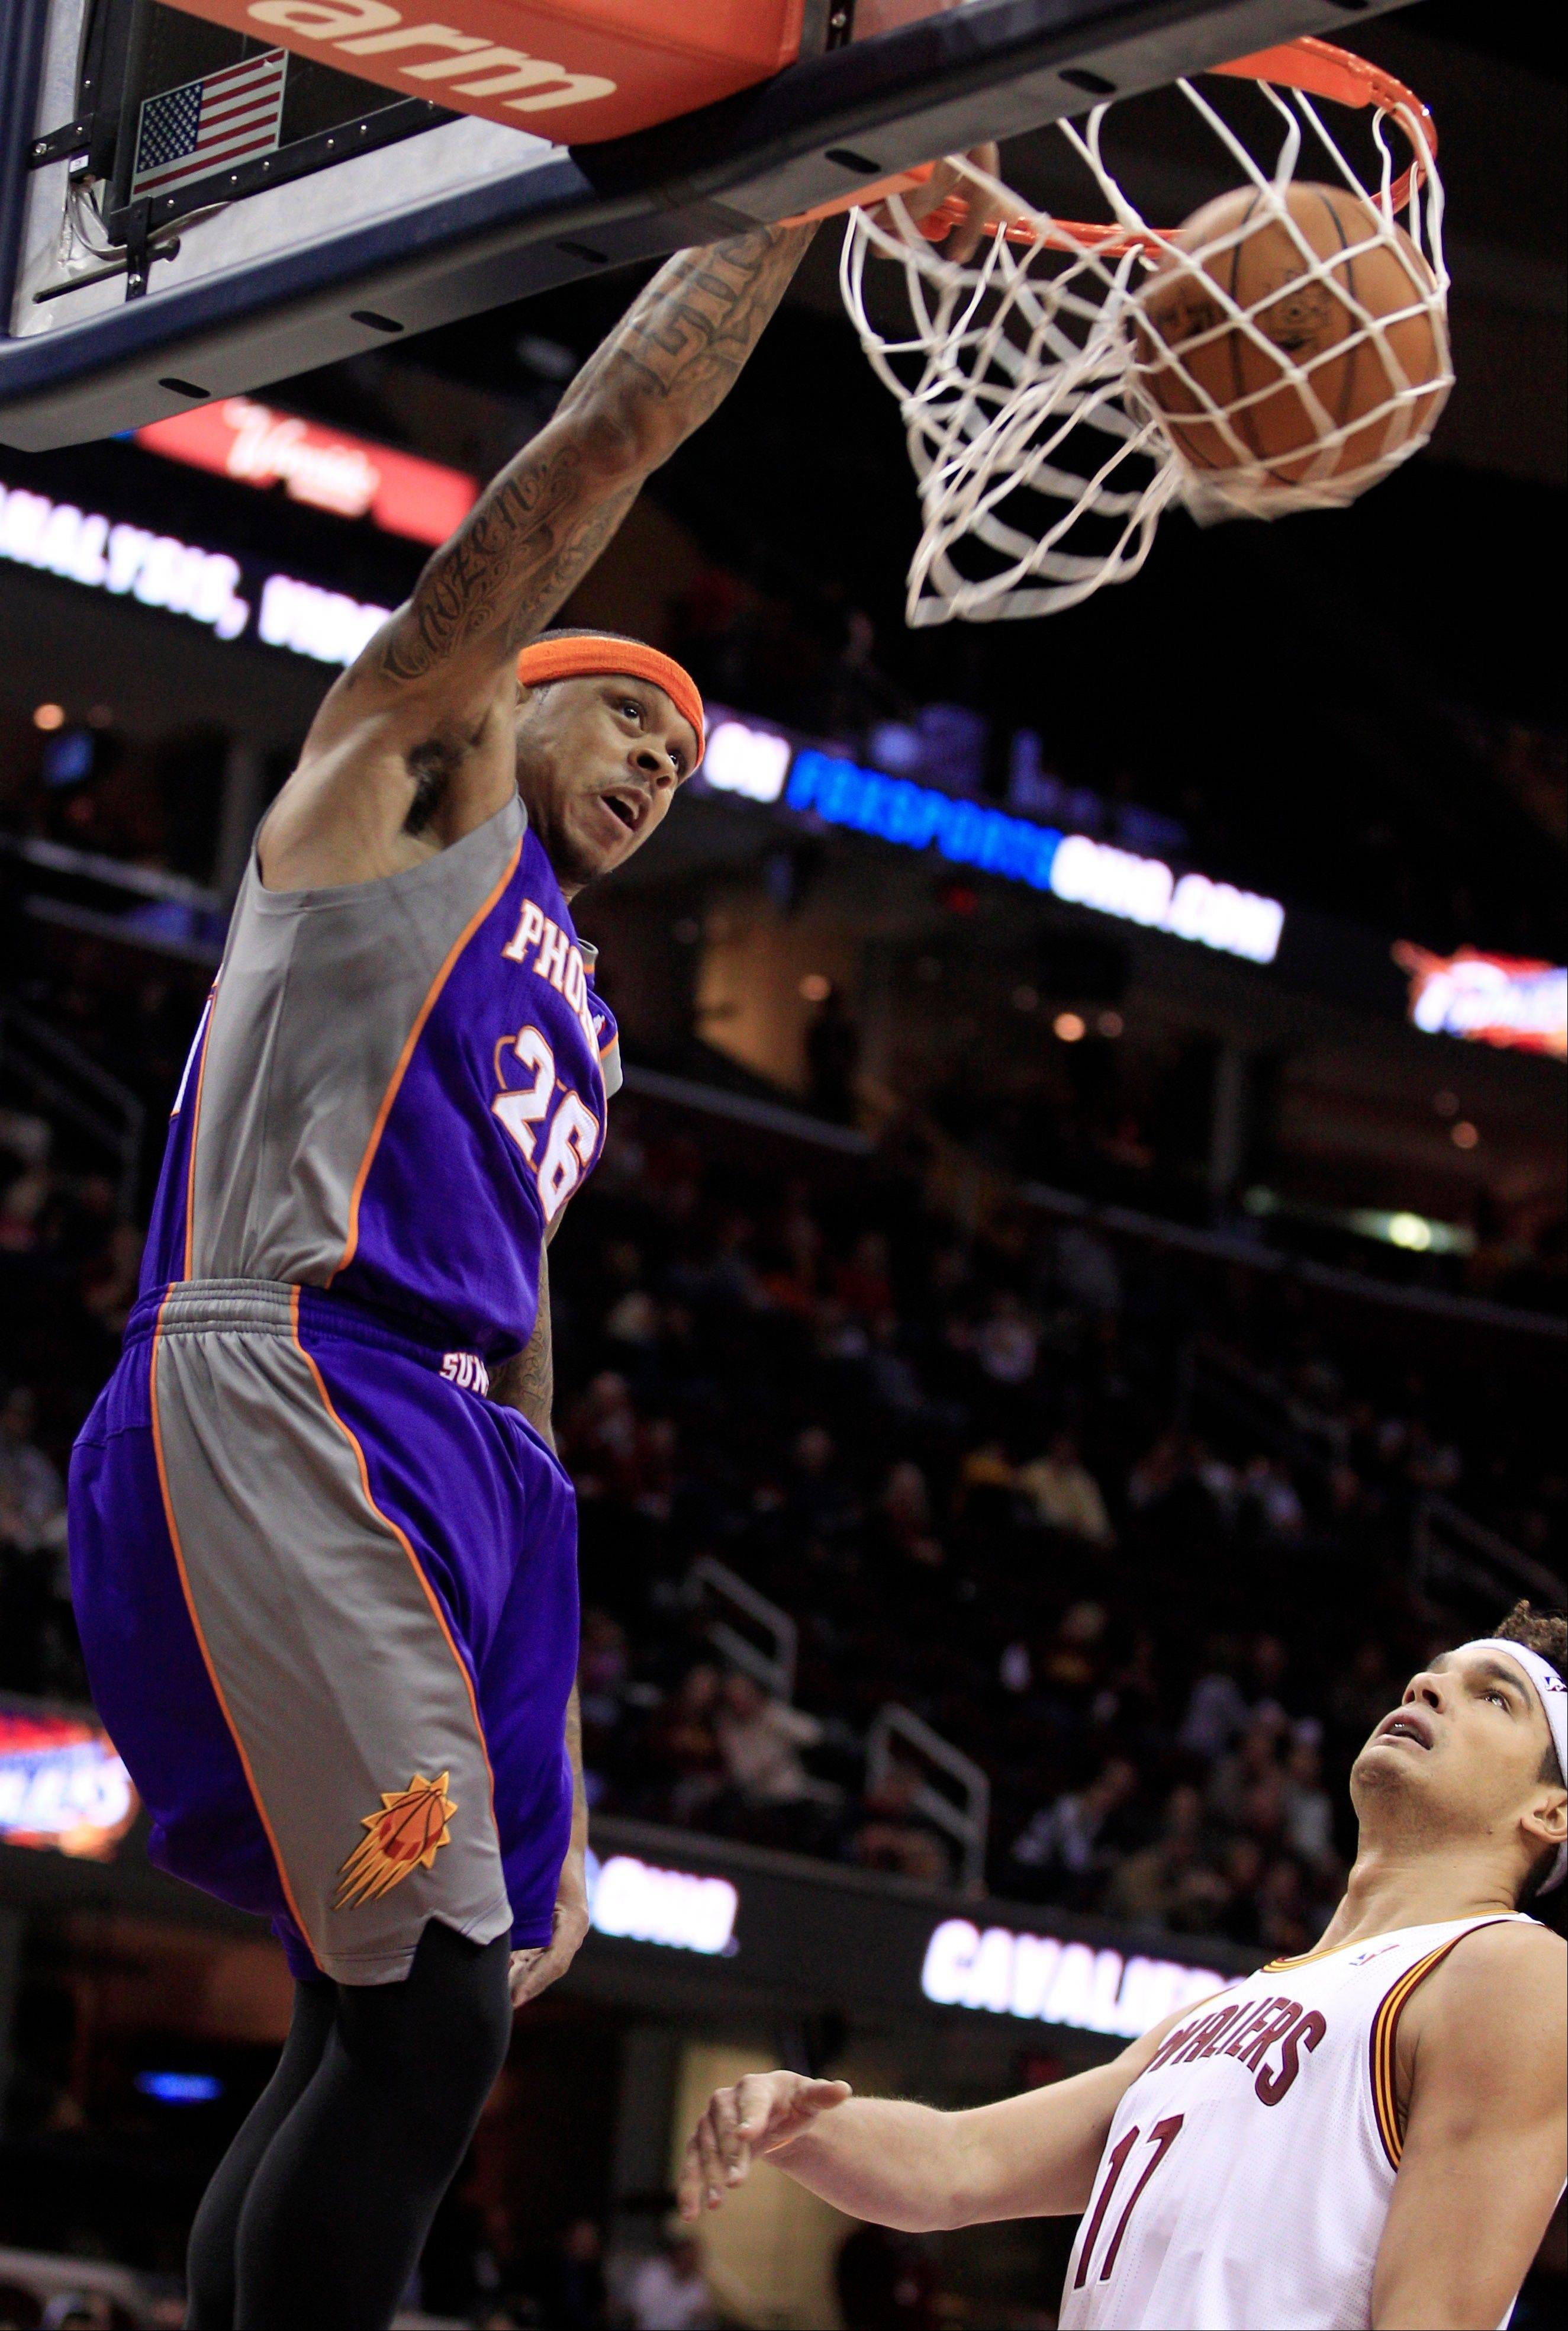 The Phoenix Suns' Shannon Brown dunks in front of the Cleveland Cavaliers' Anderson Varejao Tuesday during the first quarter in Cleveland.